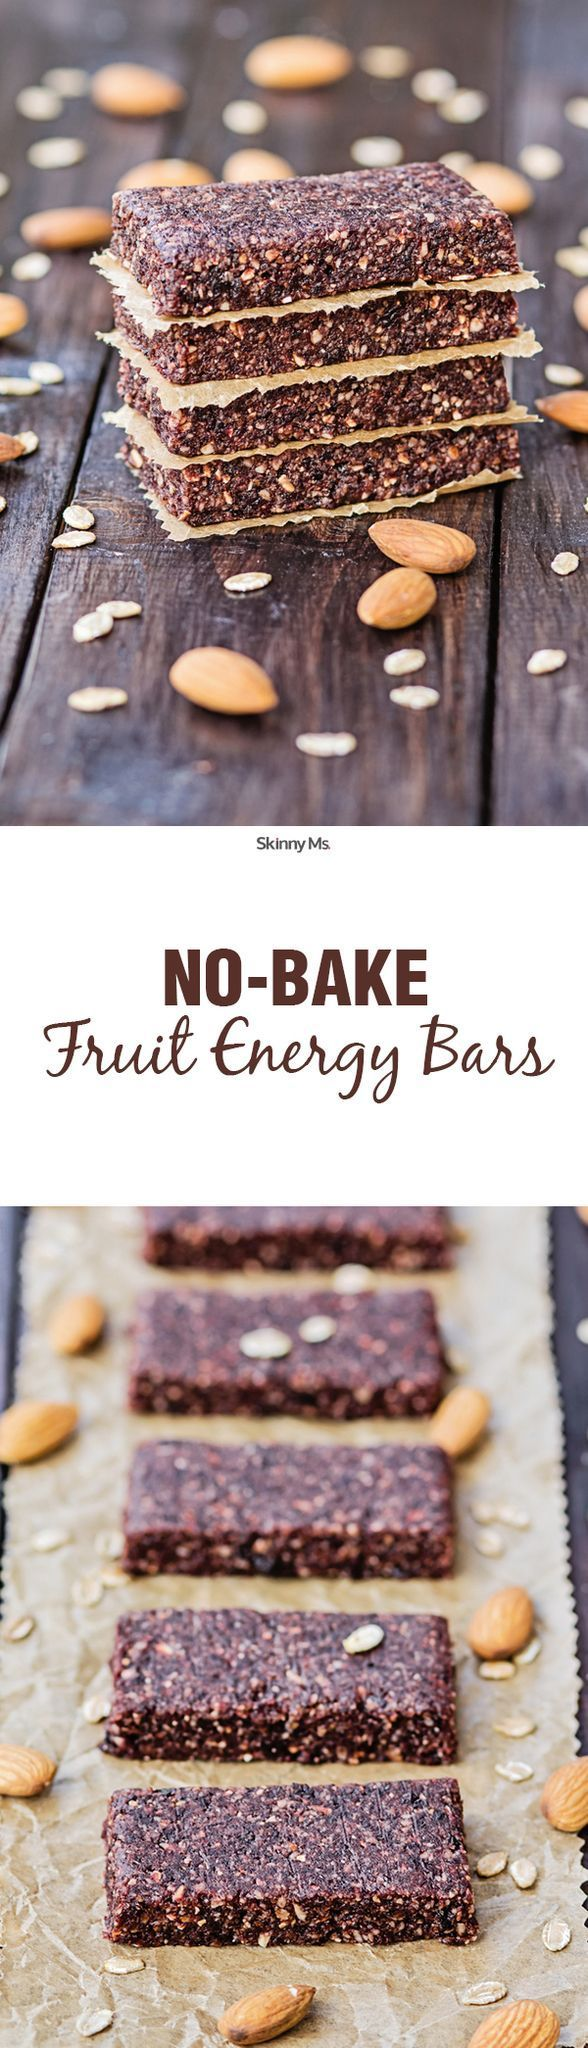 These No Bake Fruit Energy Bars are the perfect grab-n-go snack for lasting energy!